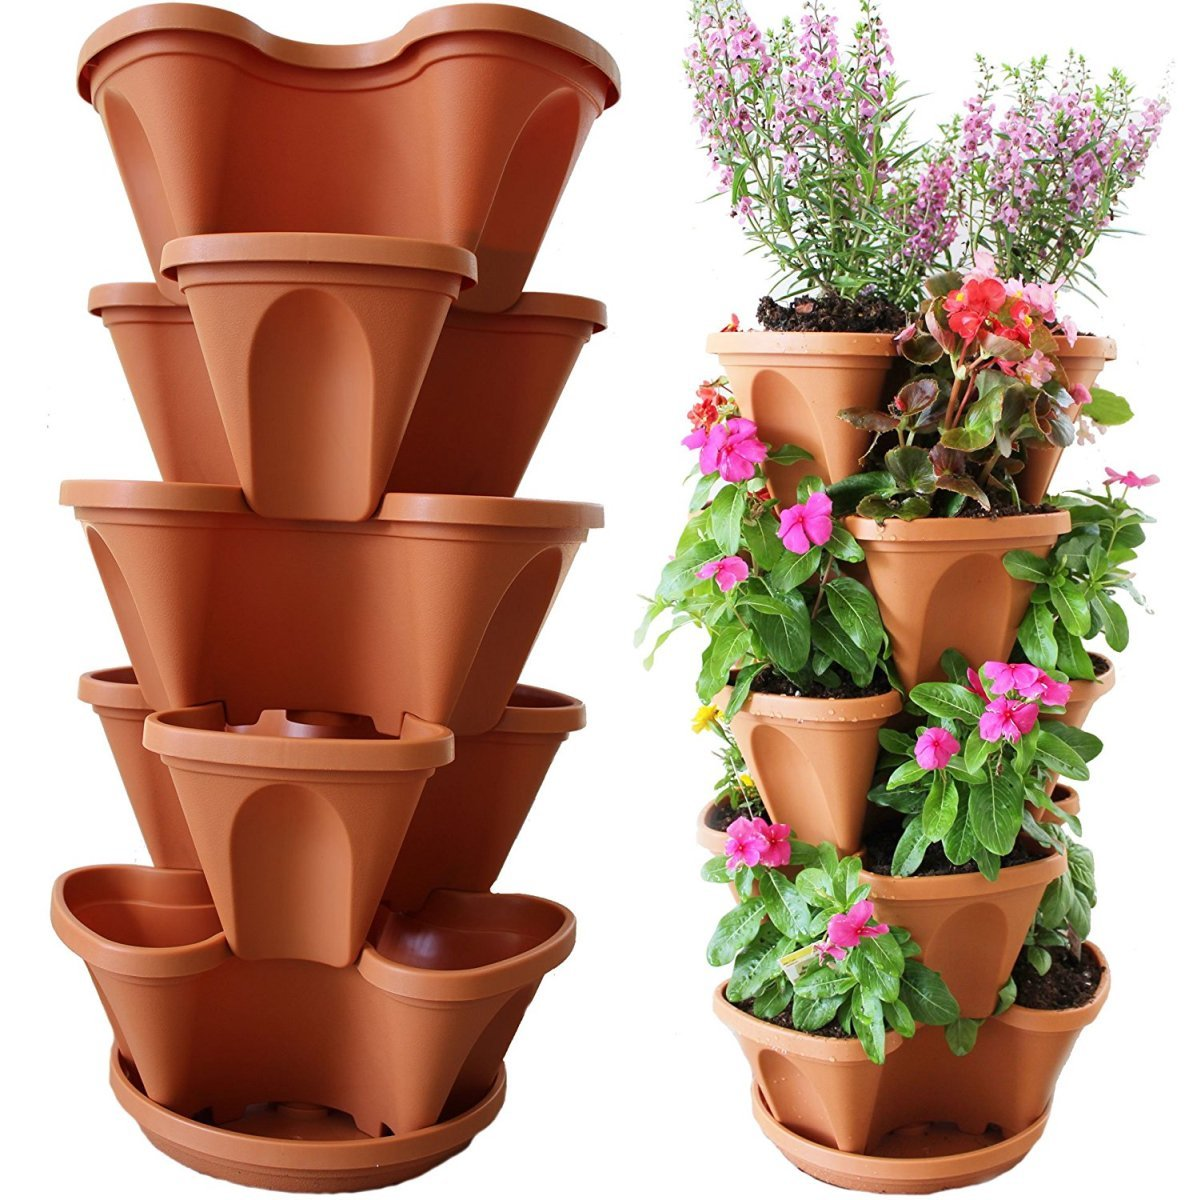 Nature's Distributing Stacking Planters - 5 Tier - with Patented Flow Grid System by Nature's Distributing